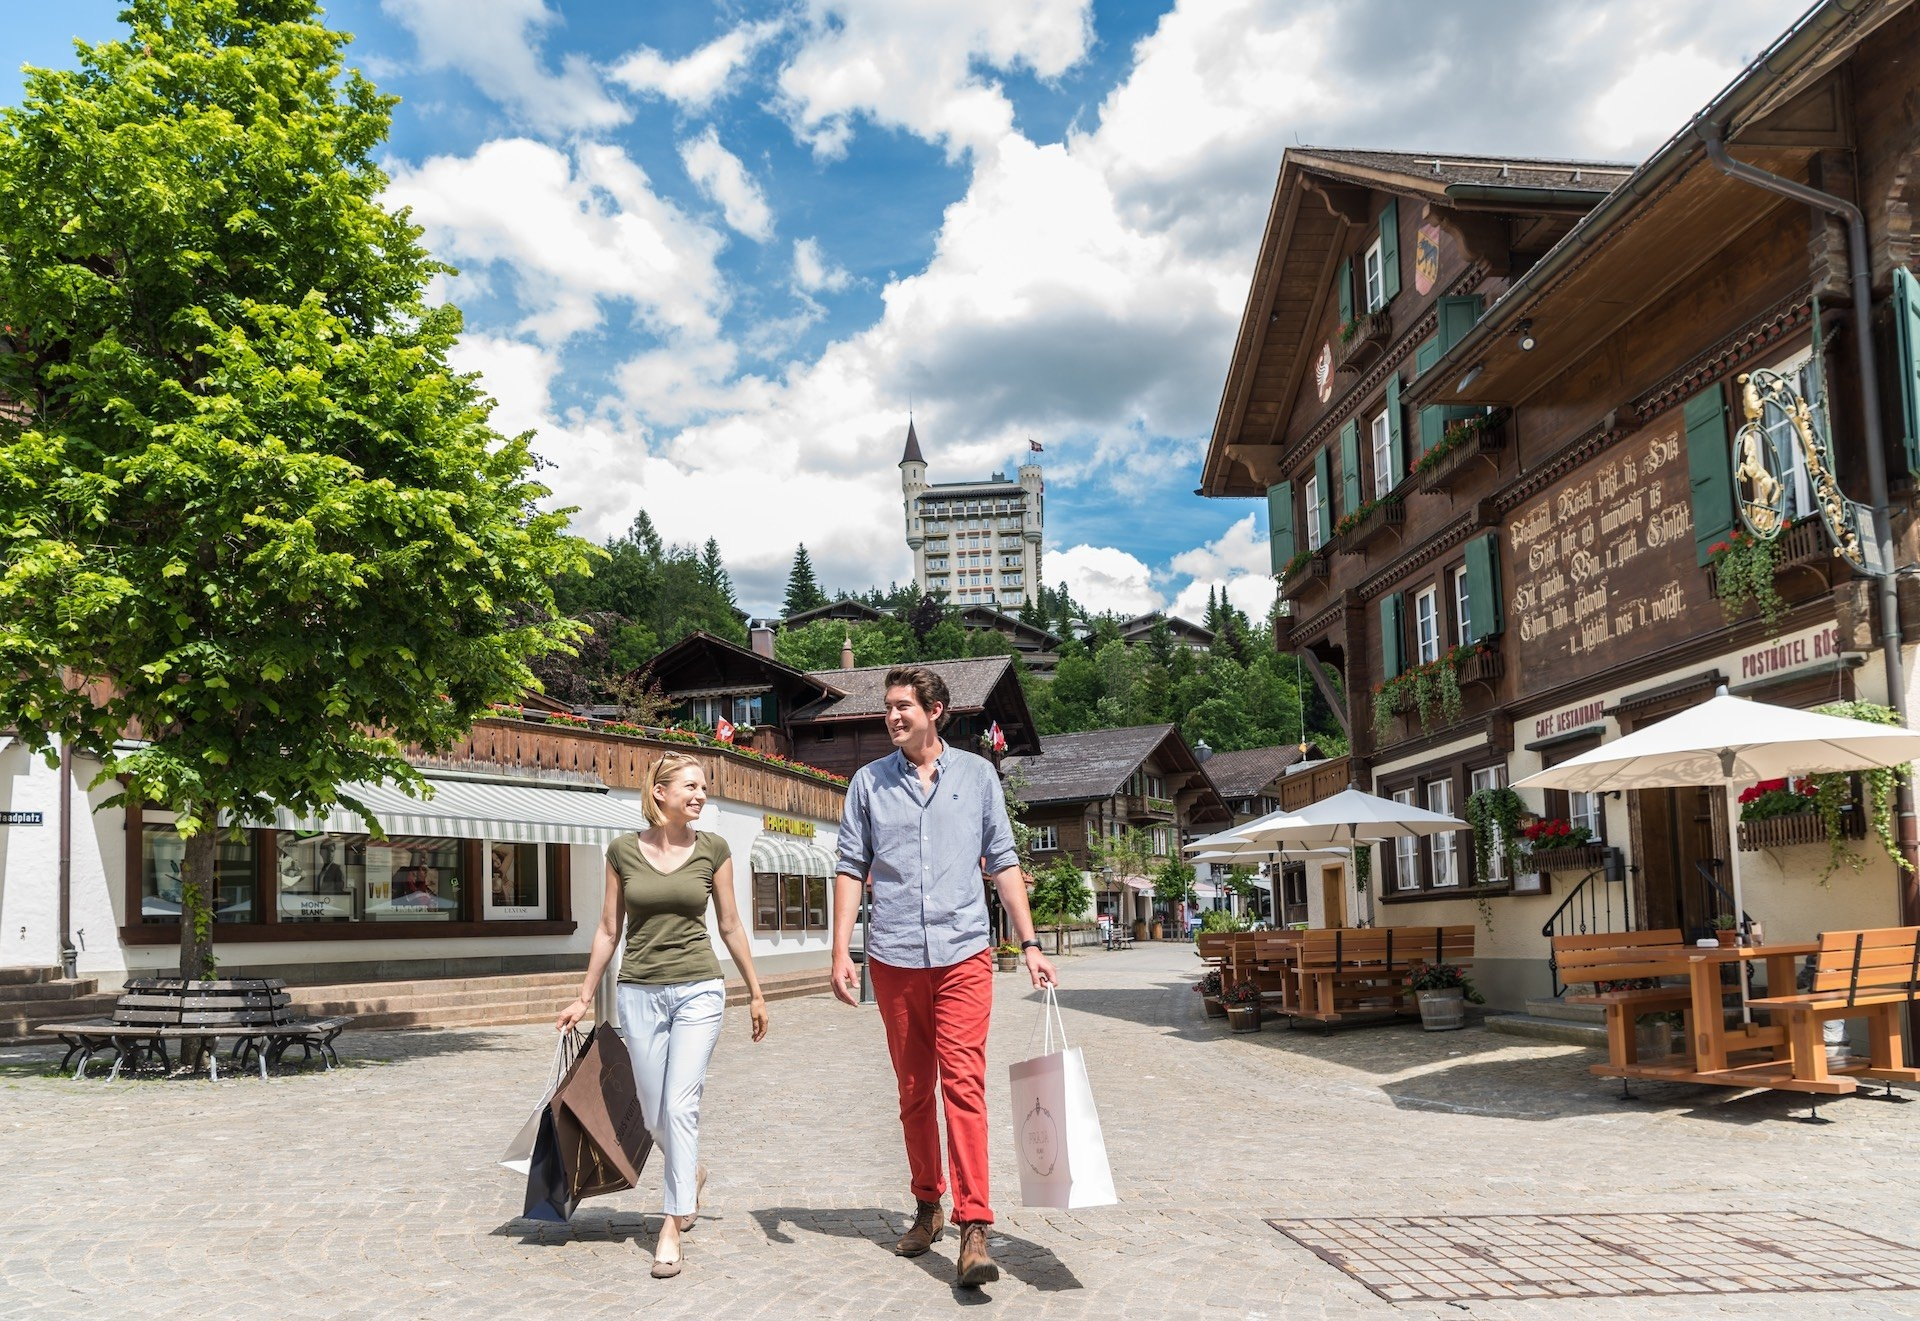 Take my money Gstaad, just take my money! Photocredit: Gstaad Tourism